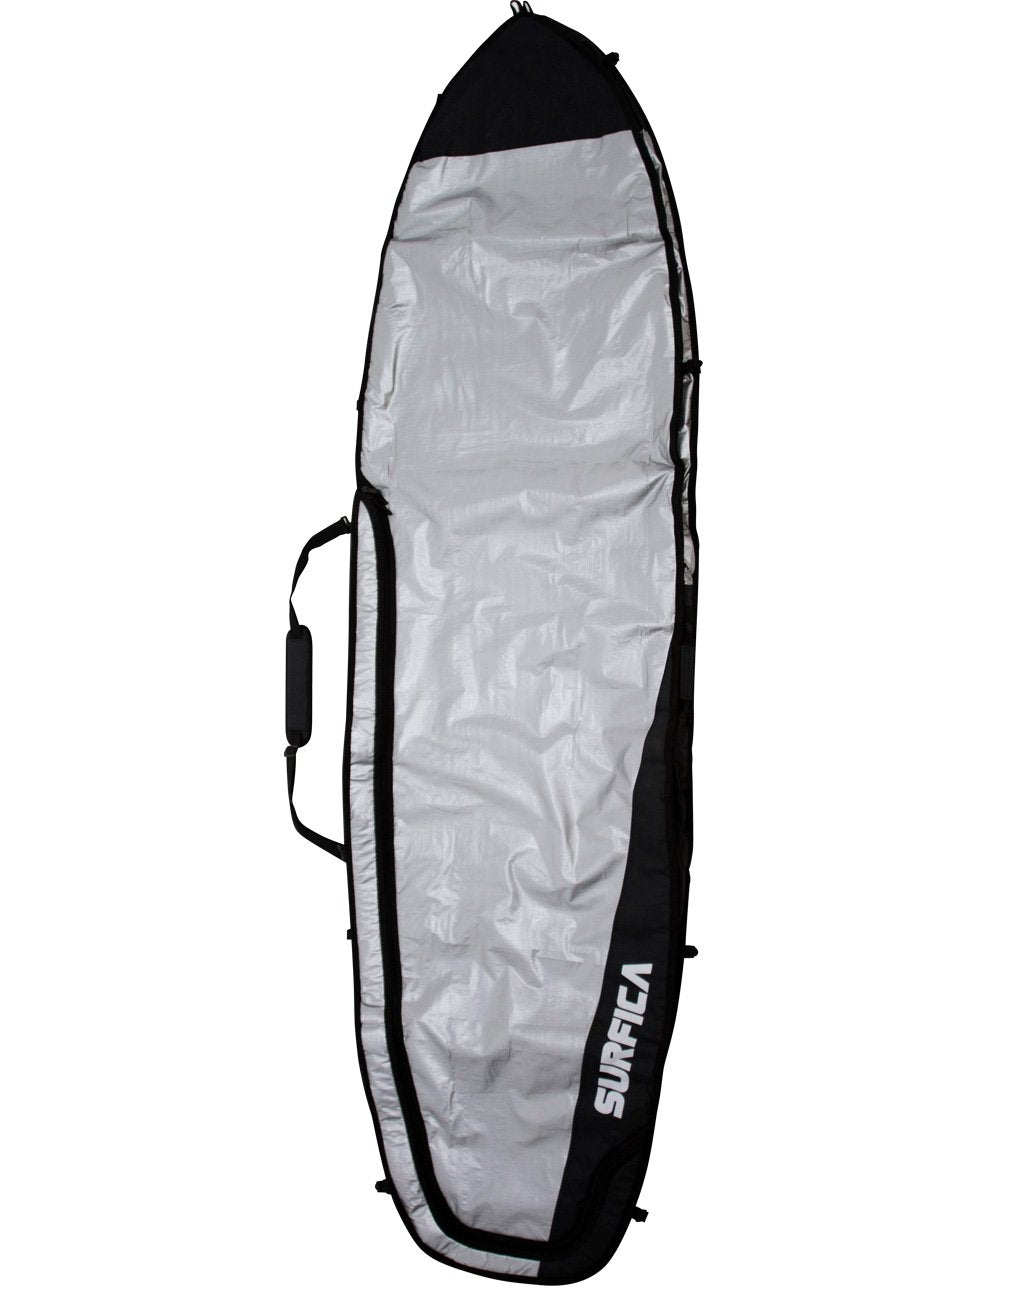 Surfica Flat Water SUP Bag